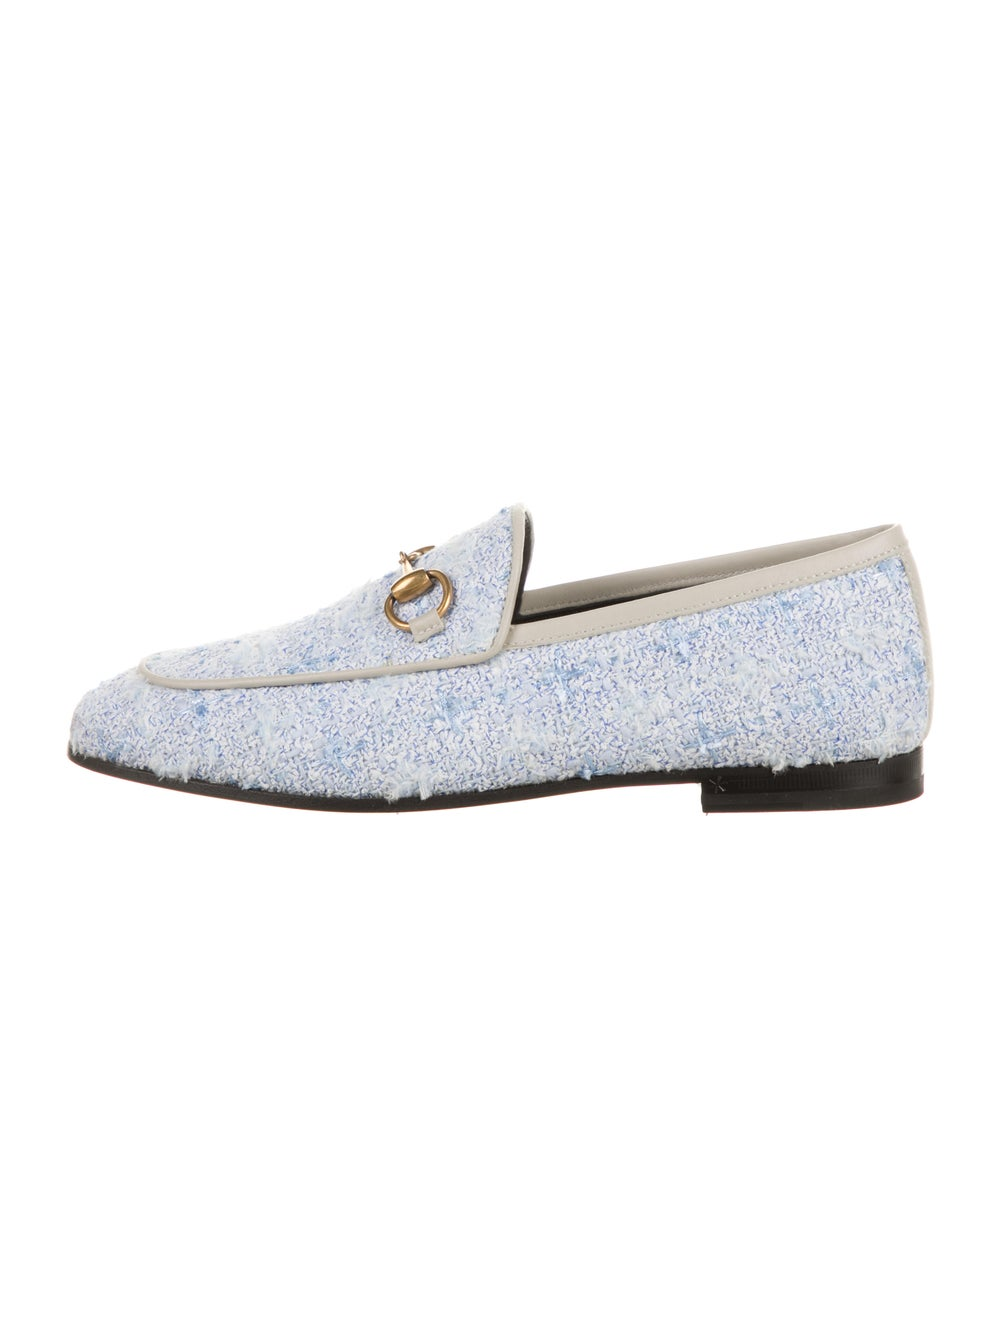 Gucci Horsebit Accent Tweed Pattern Loafers w/ Ta… - image 1